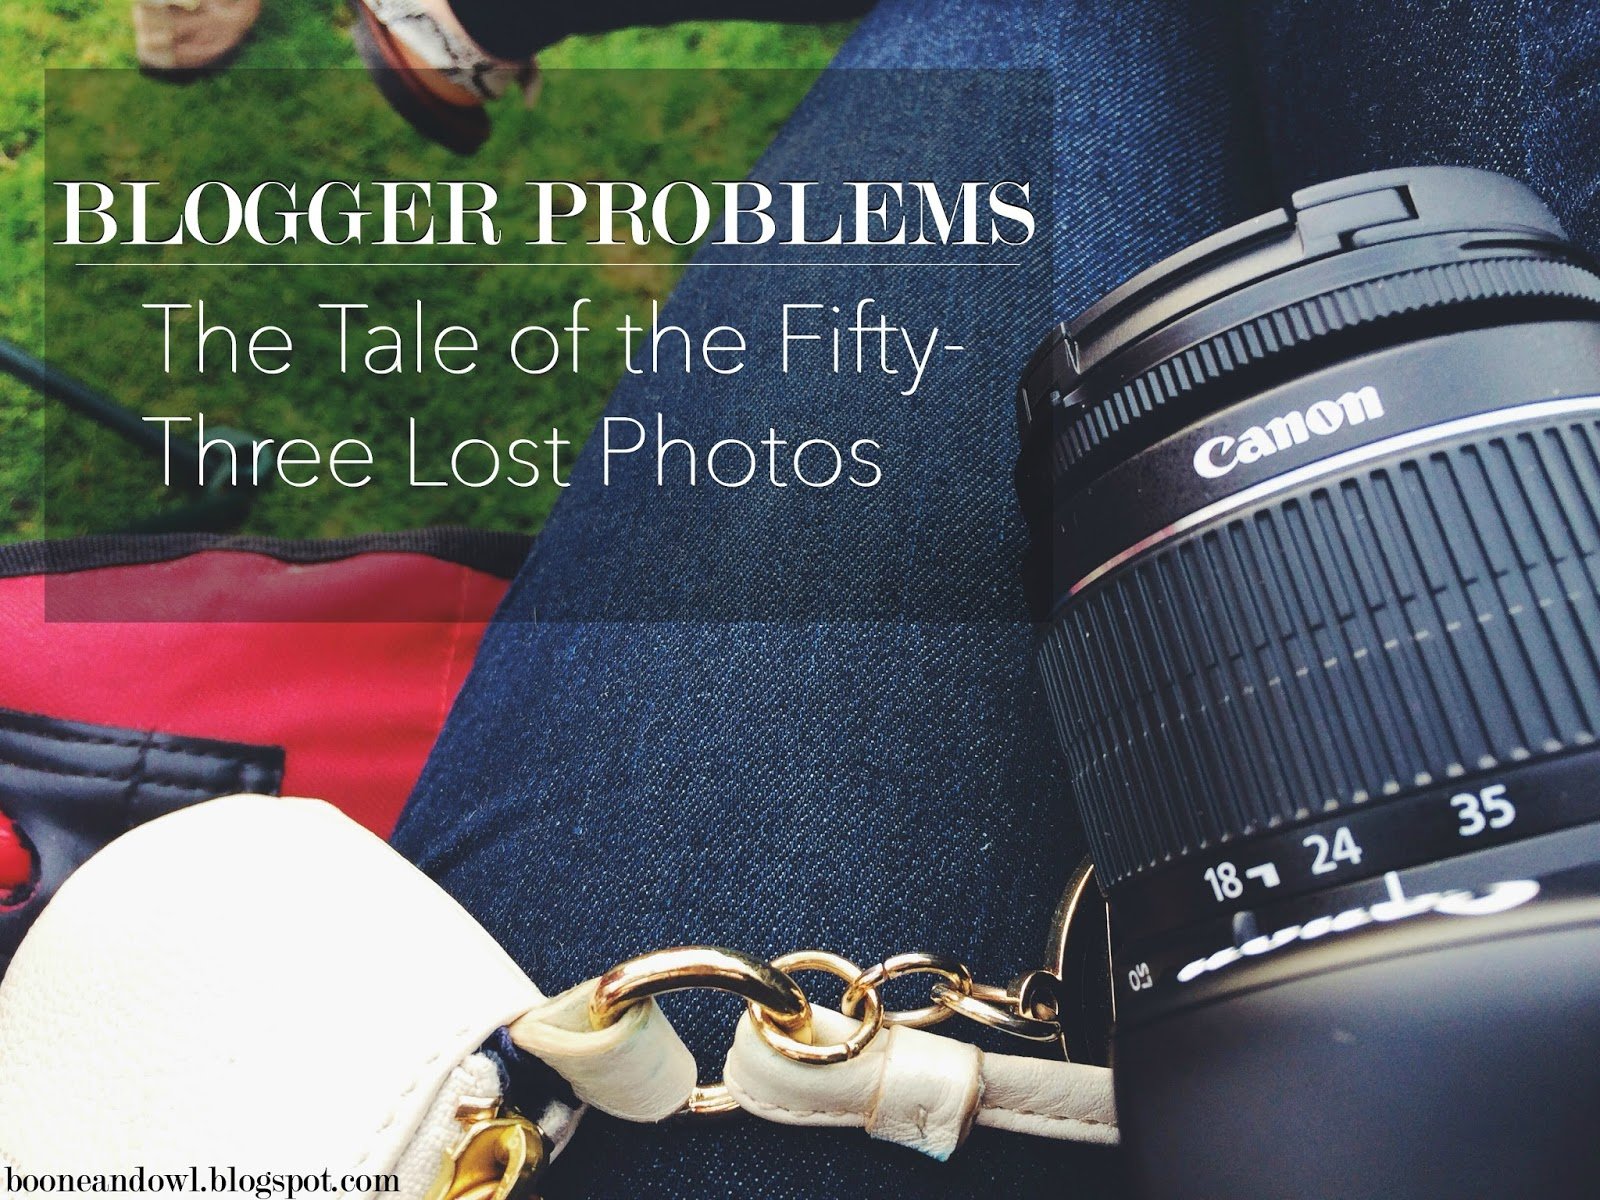 BLOGGER PROBLEMS: THE TALE OF FIFTY-THREE LOST PHOTOS